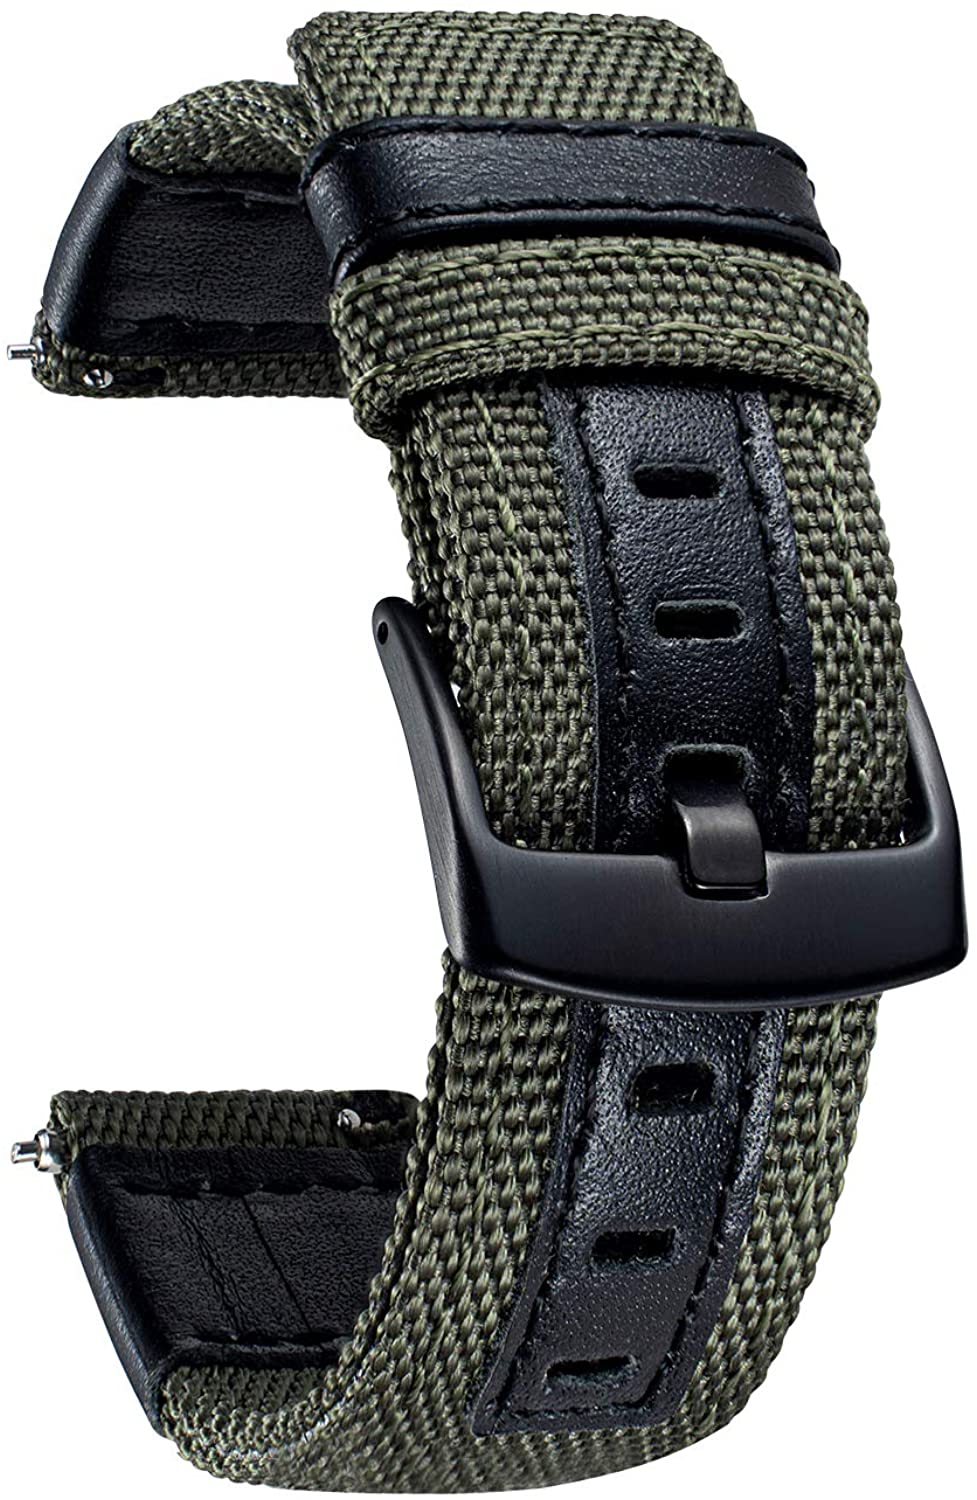 BINLUN Watch Bands Classic Canvas Fabric with Genuine Leather Hybrid Watch Straps Replacement Wristband with Black Buckle in 6 Colors (Brown Green Black Blue Khaki Red) 3 Sizes (20mm 22mm 24mm)